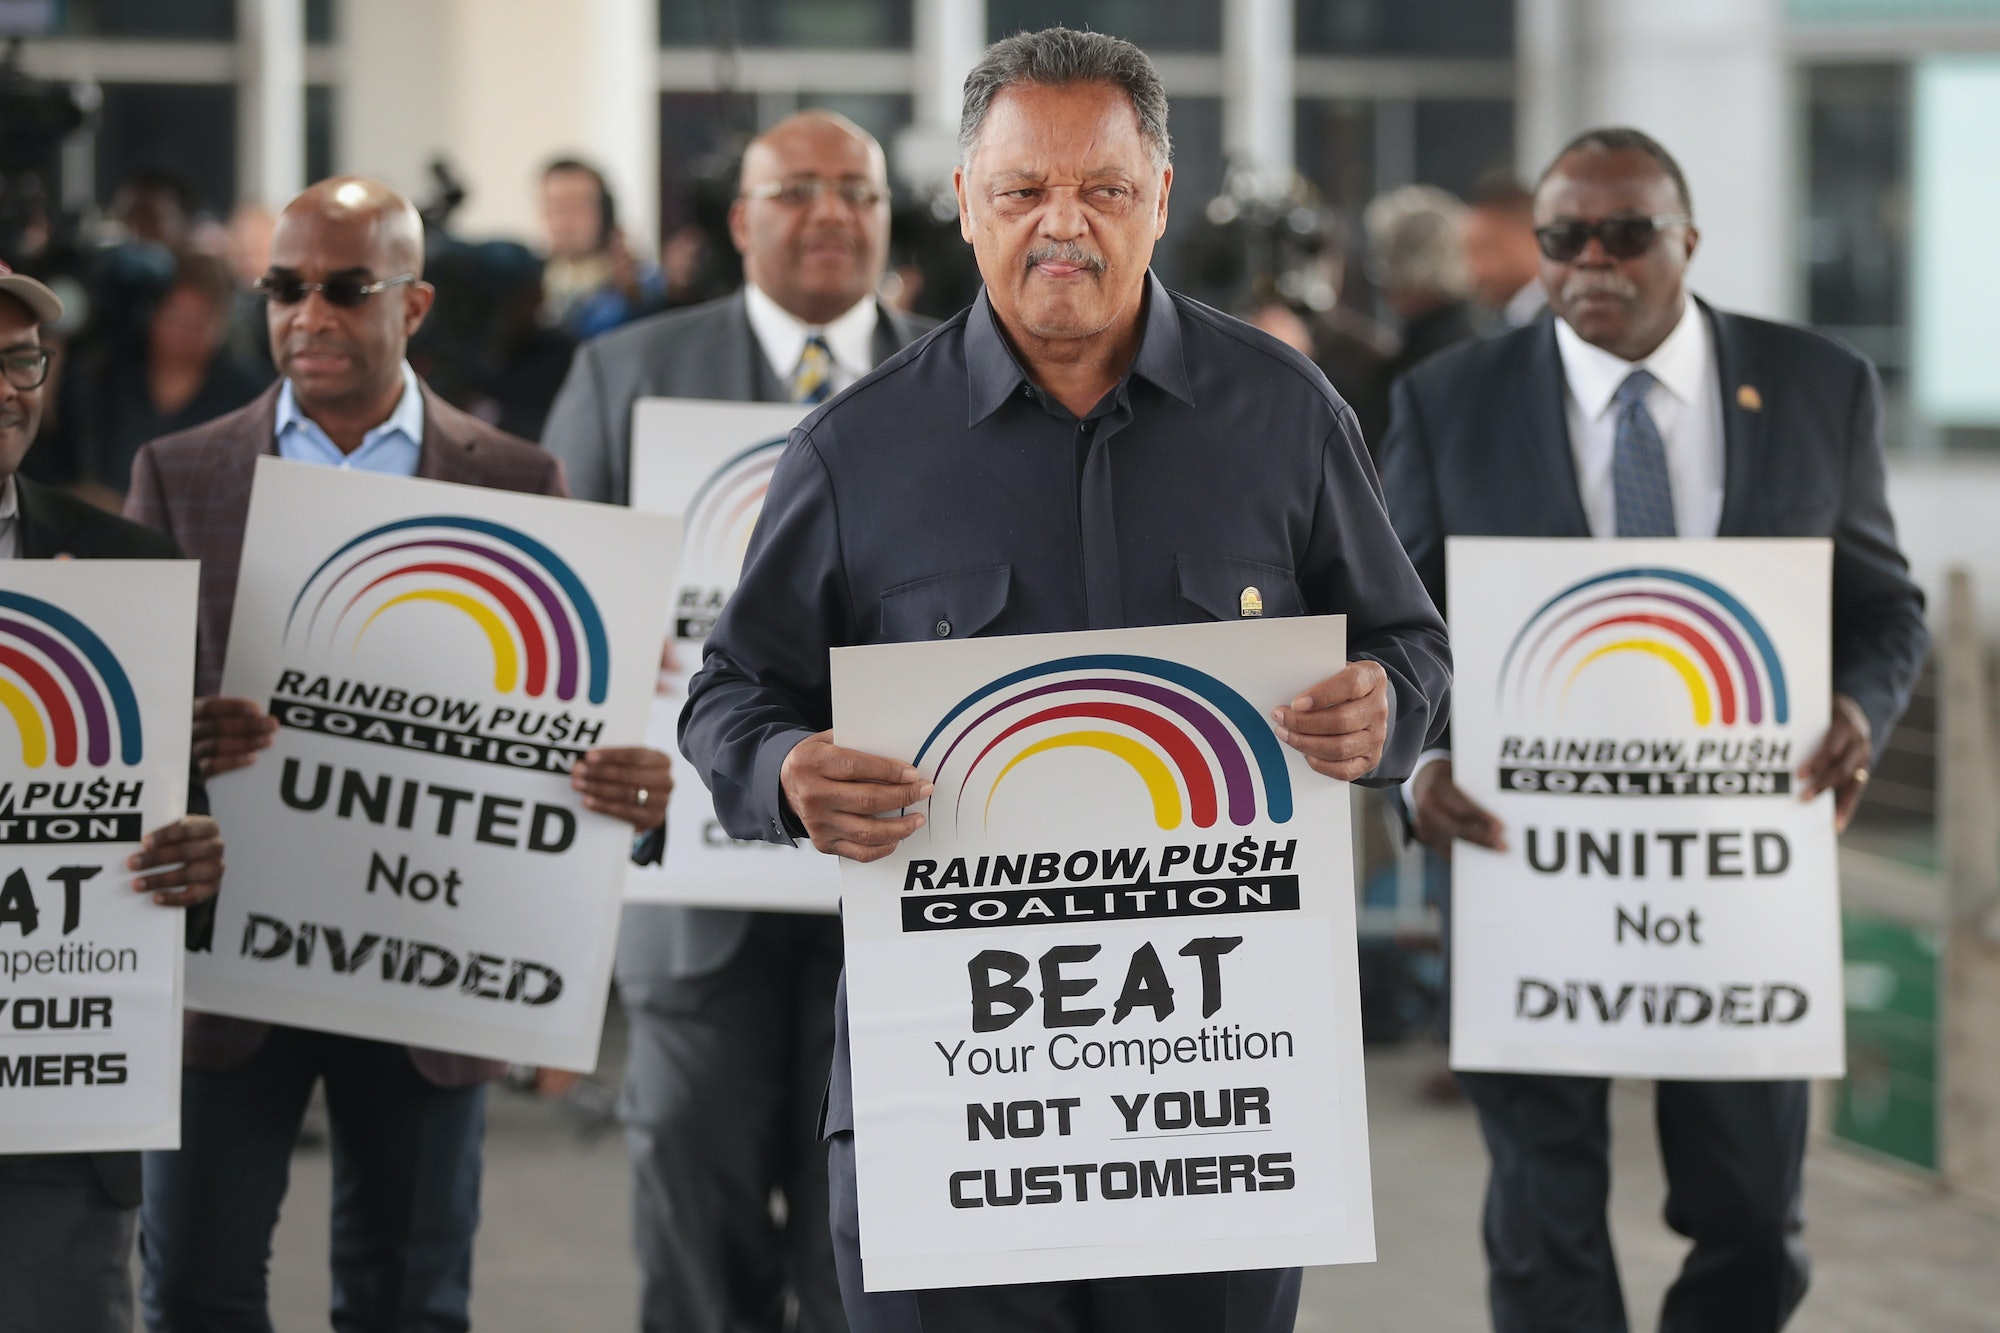 Civil rights leader Reverend Jesse Jackson leads a small group from the Rainbow PUSH Coalition in a protest outside the United Airlines terminal at O'Hare International Airport on April 12,corporate image after a cell phone video was released showing a passenger being dragged from his seat and bloodied by airport police after he refused to leave a reportedly overbooked flight that was preparing to fly from Chicago to Louisville.